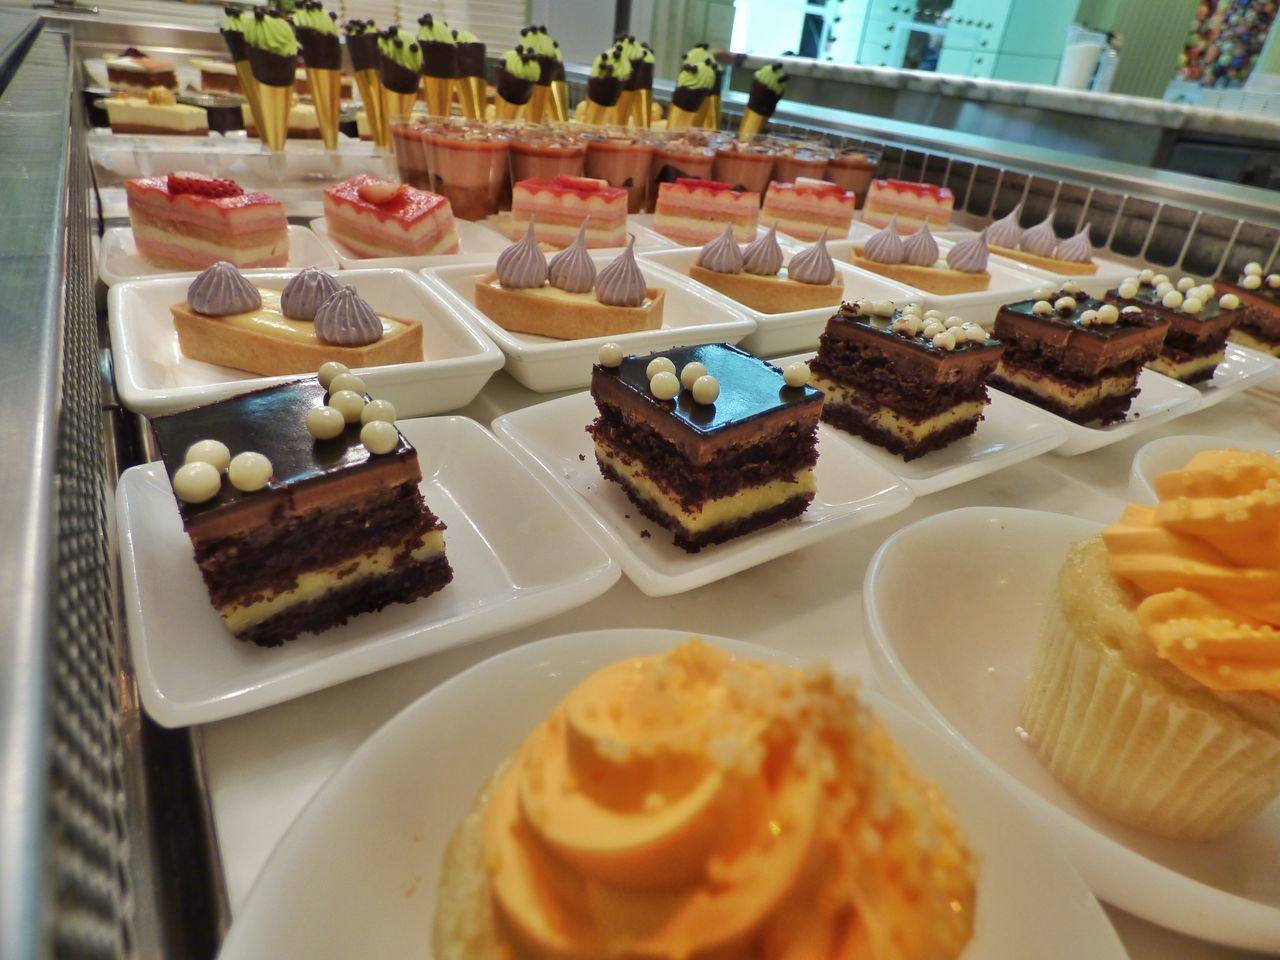 food and drink, food, indulgence, plate, freshness, ready-to-eat, temptation, sweet food, dessert, still life, indoors, cake, unhealthy eating, serving size, table, variation, baked, no people, close-up, appetizer, gourmet, pastry, stuffed, day